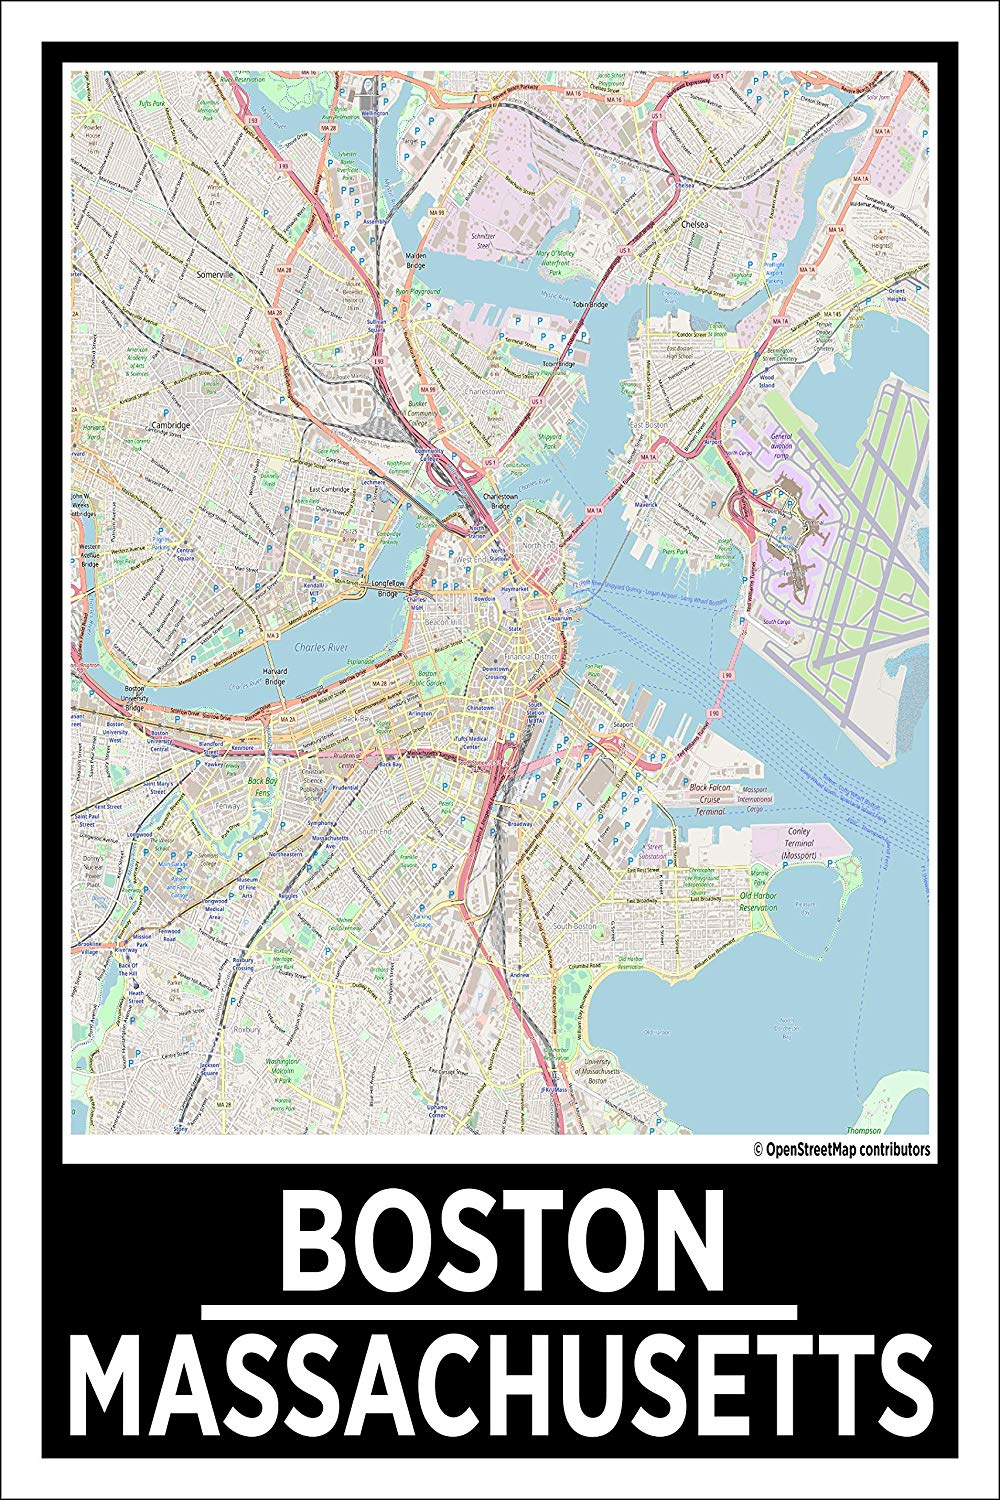 "Spitzy's Boston Massachusetts Map Poster - Home Wall Art for Your Bedroom or Home Office - Map of Boston, City Map Poster (12"" x 18"" Dimensions Include a White .5"" Border)"